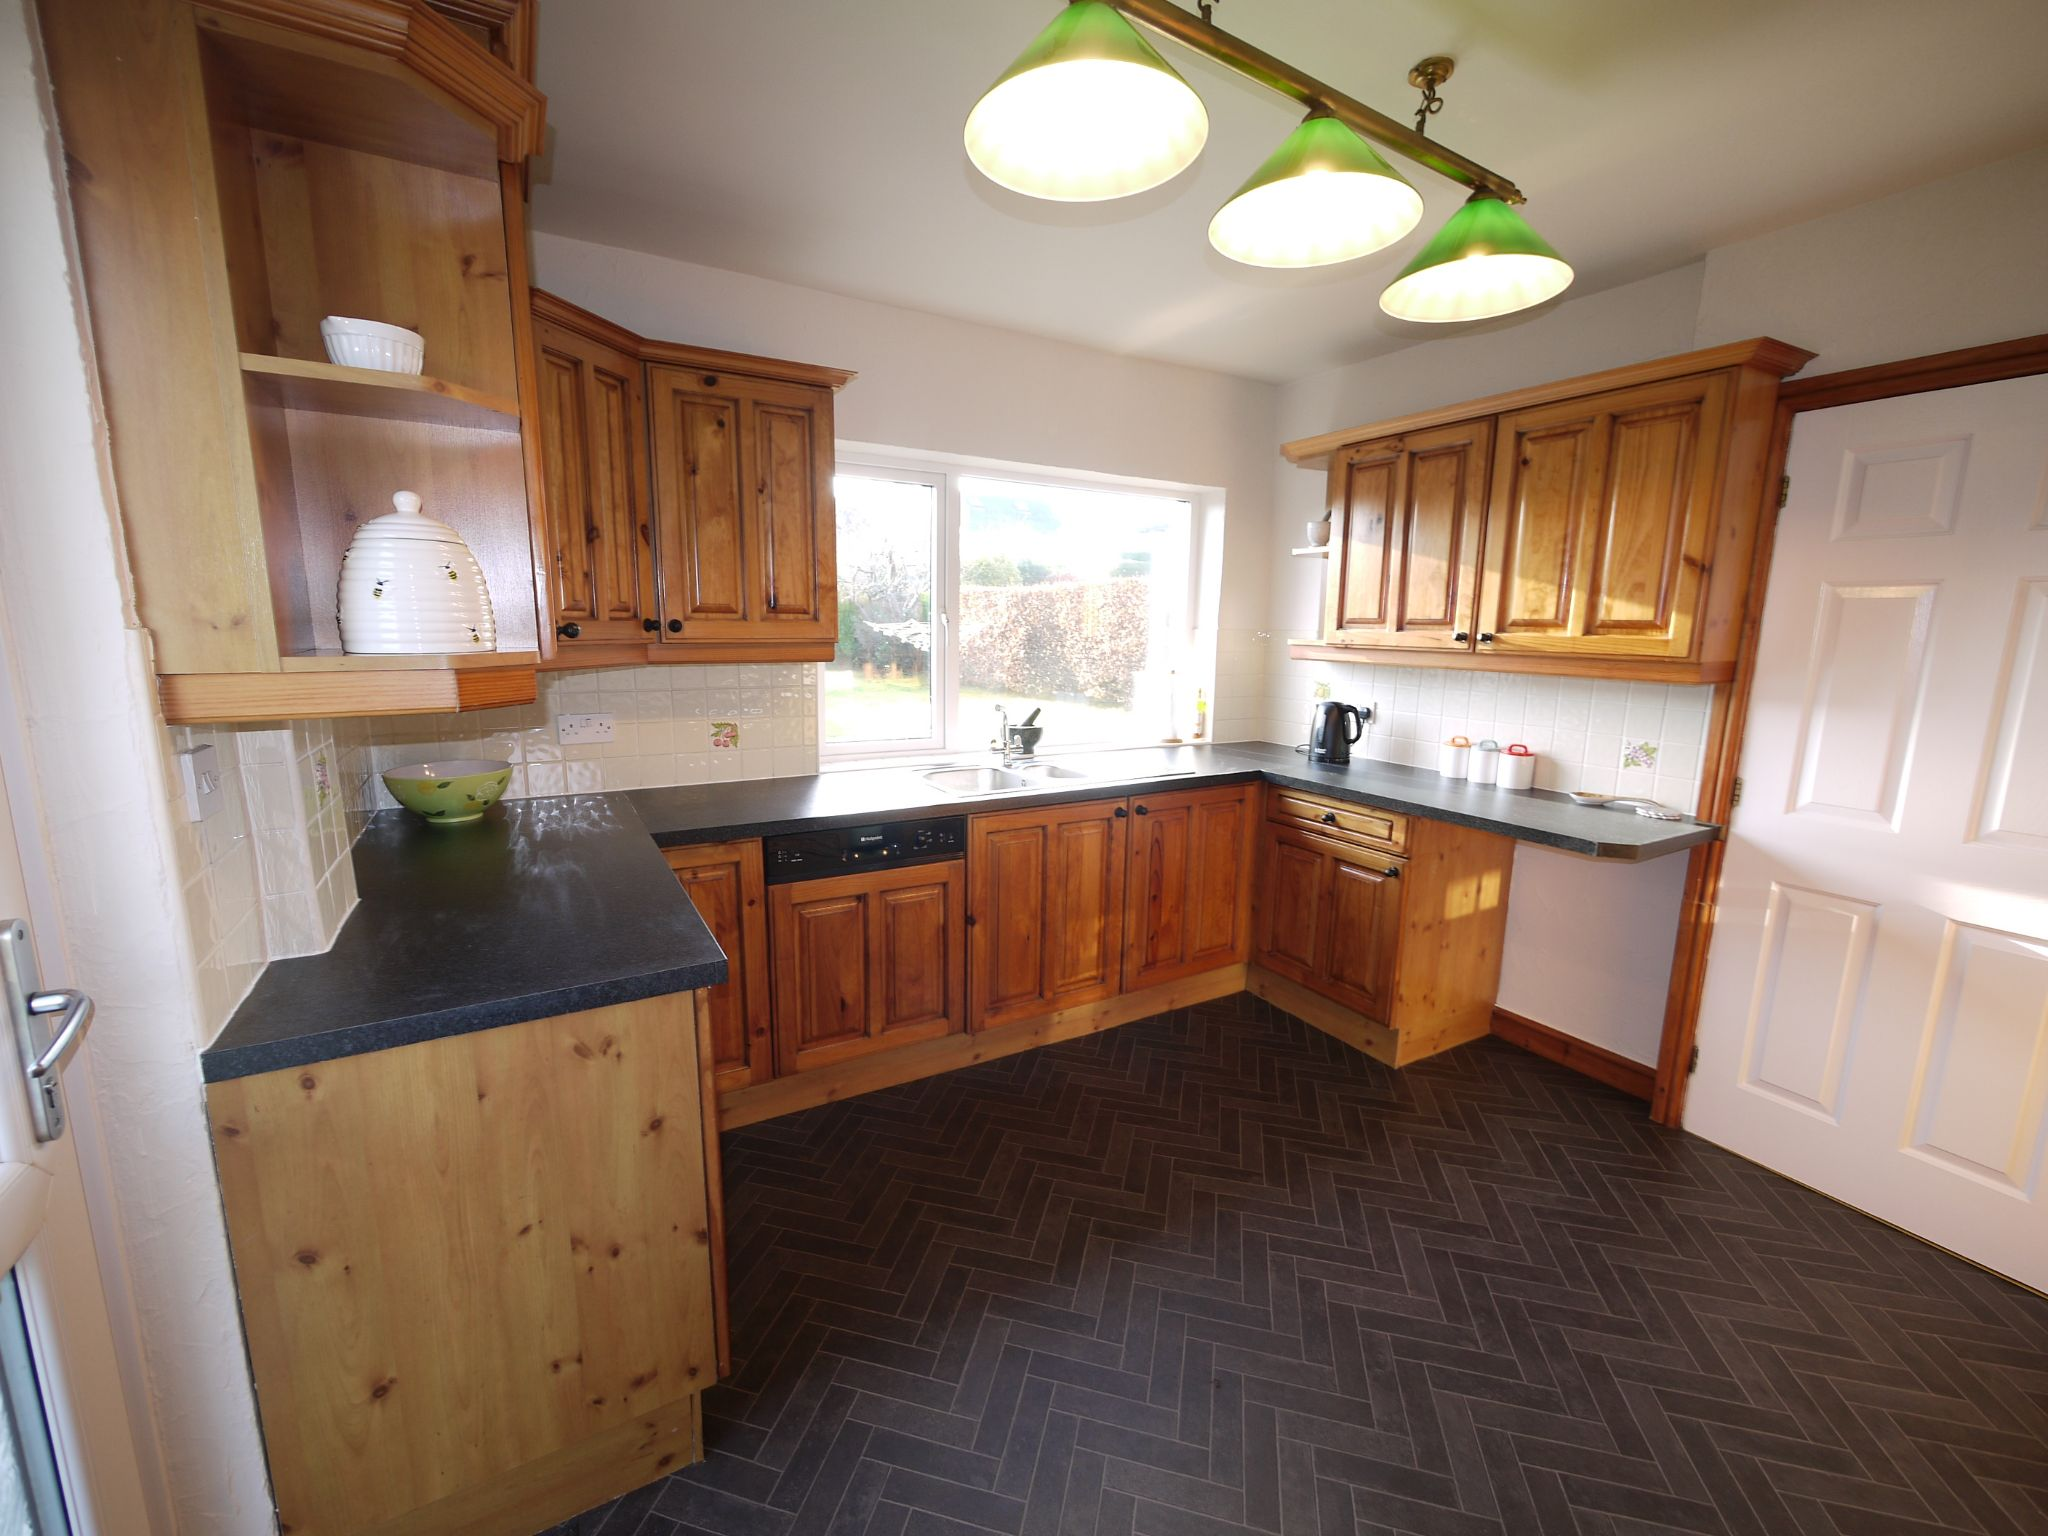 5 bedroom detached bungalow For Sale in Brighouse - kitchen2.